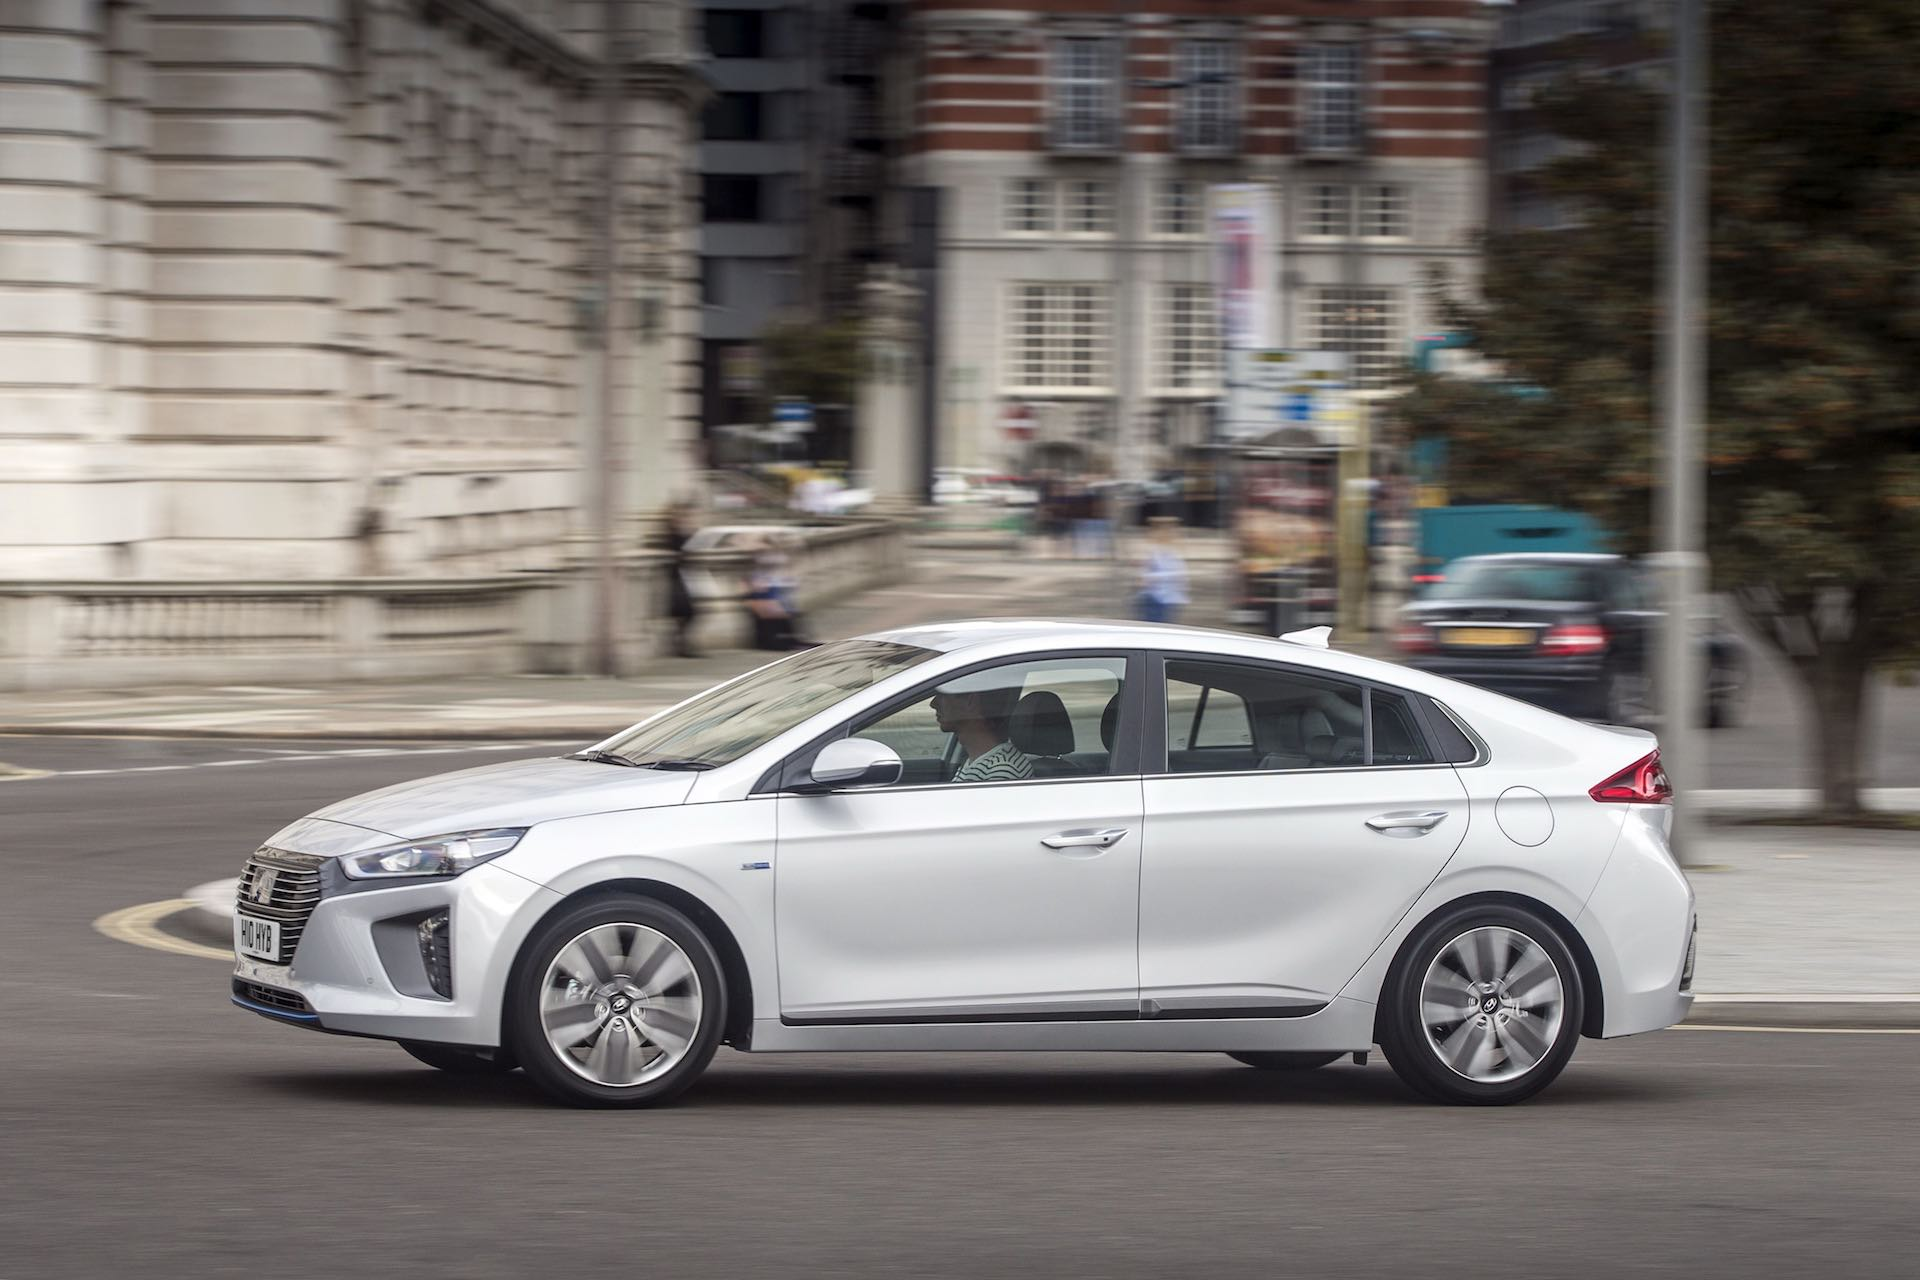 Hyundai Ioniq hybrid on the streets of London